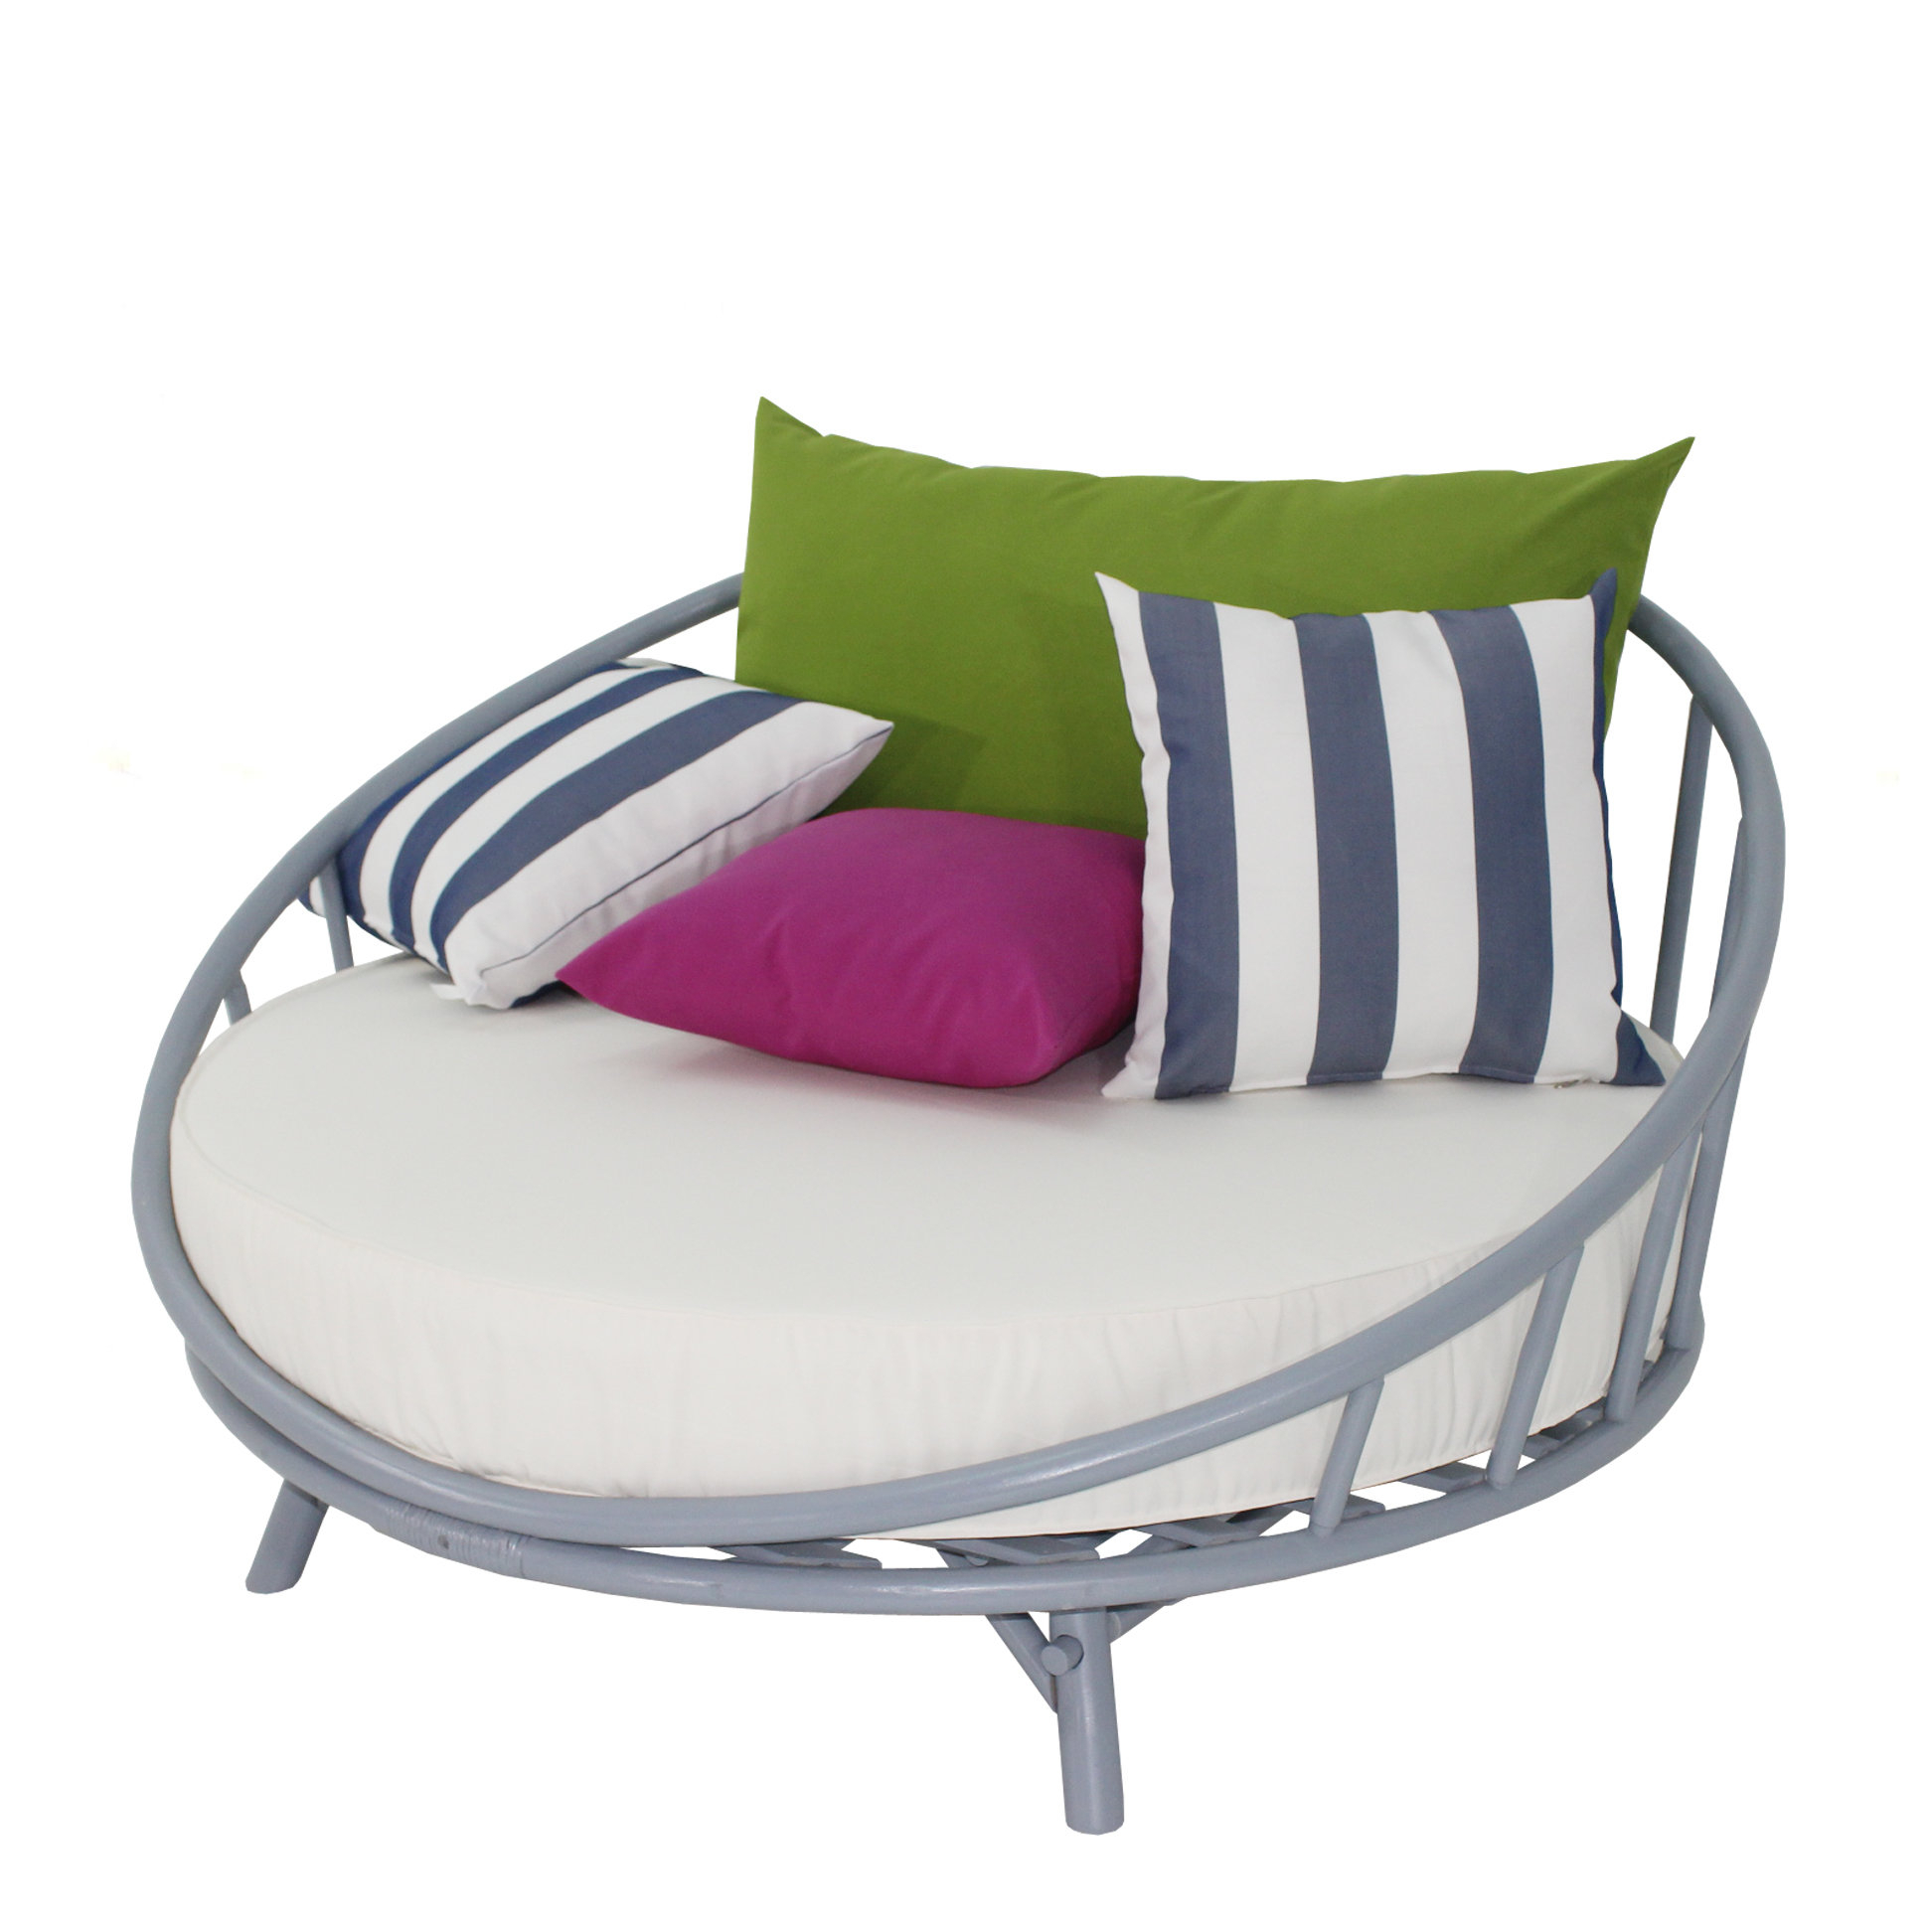 Most Recent Olu Bamboo Large Round Patio Daybed With Cushions Inside Patio Daybeds With Cushions (View 11 of 20)